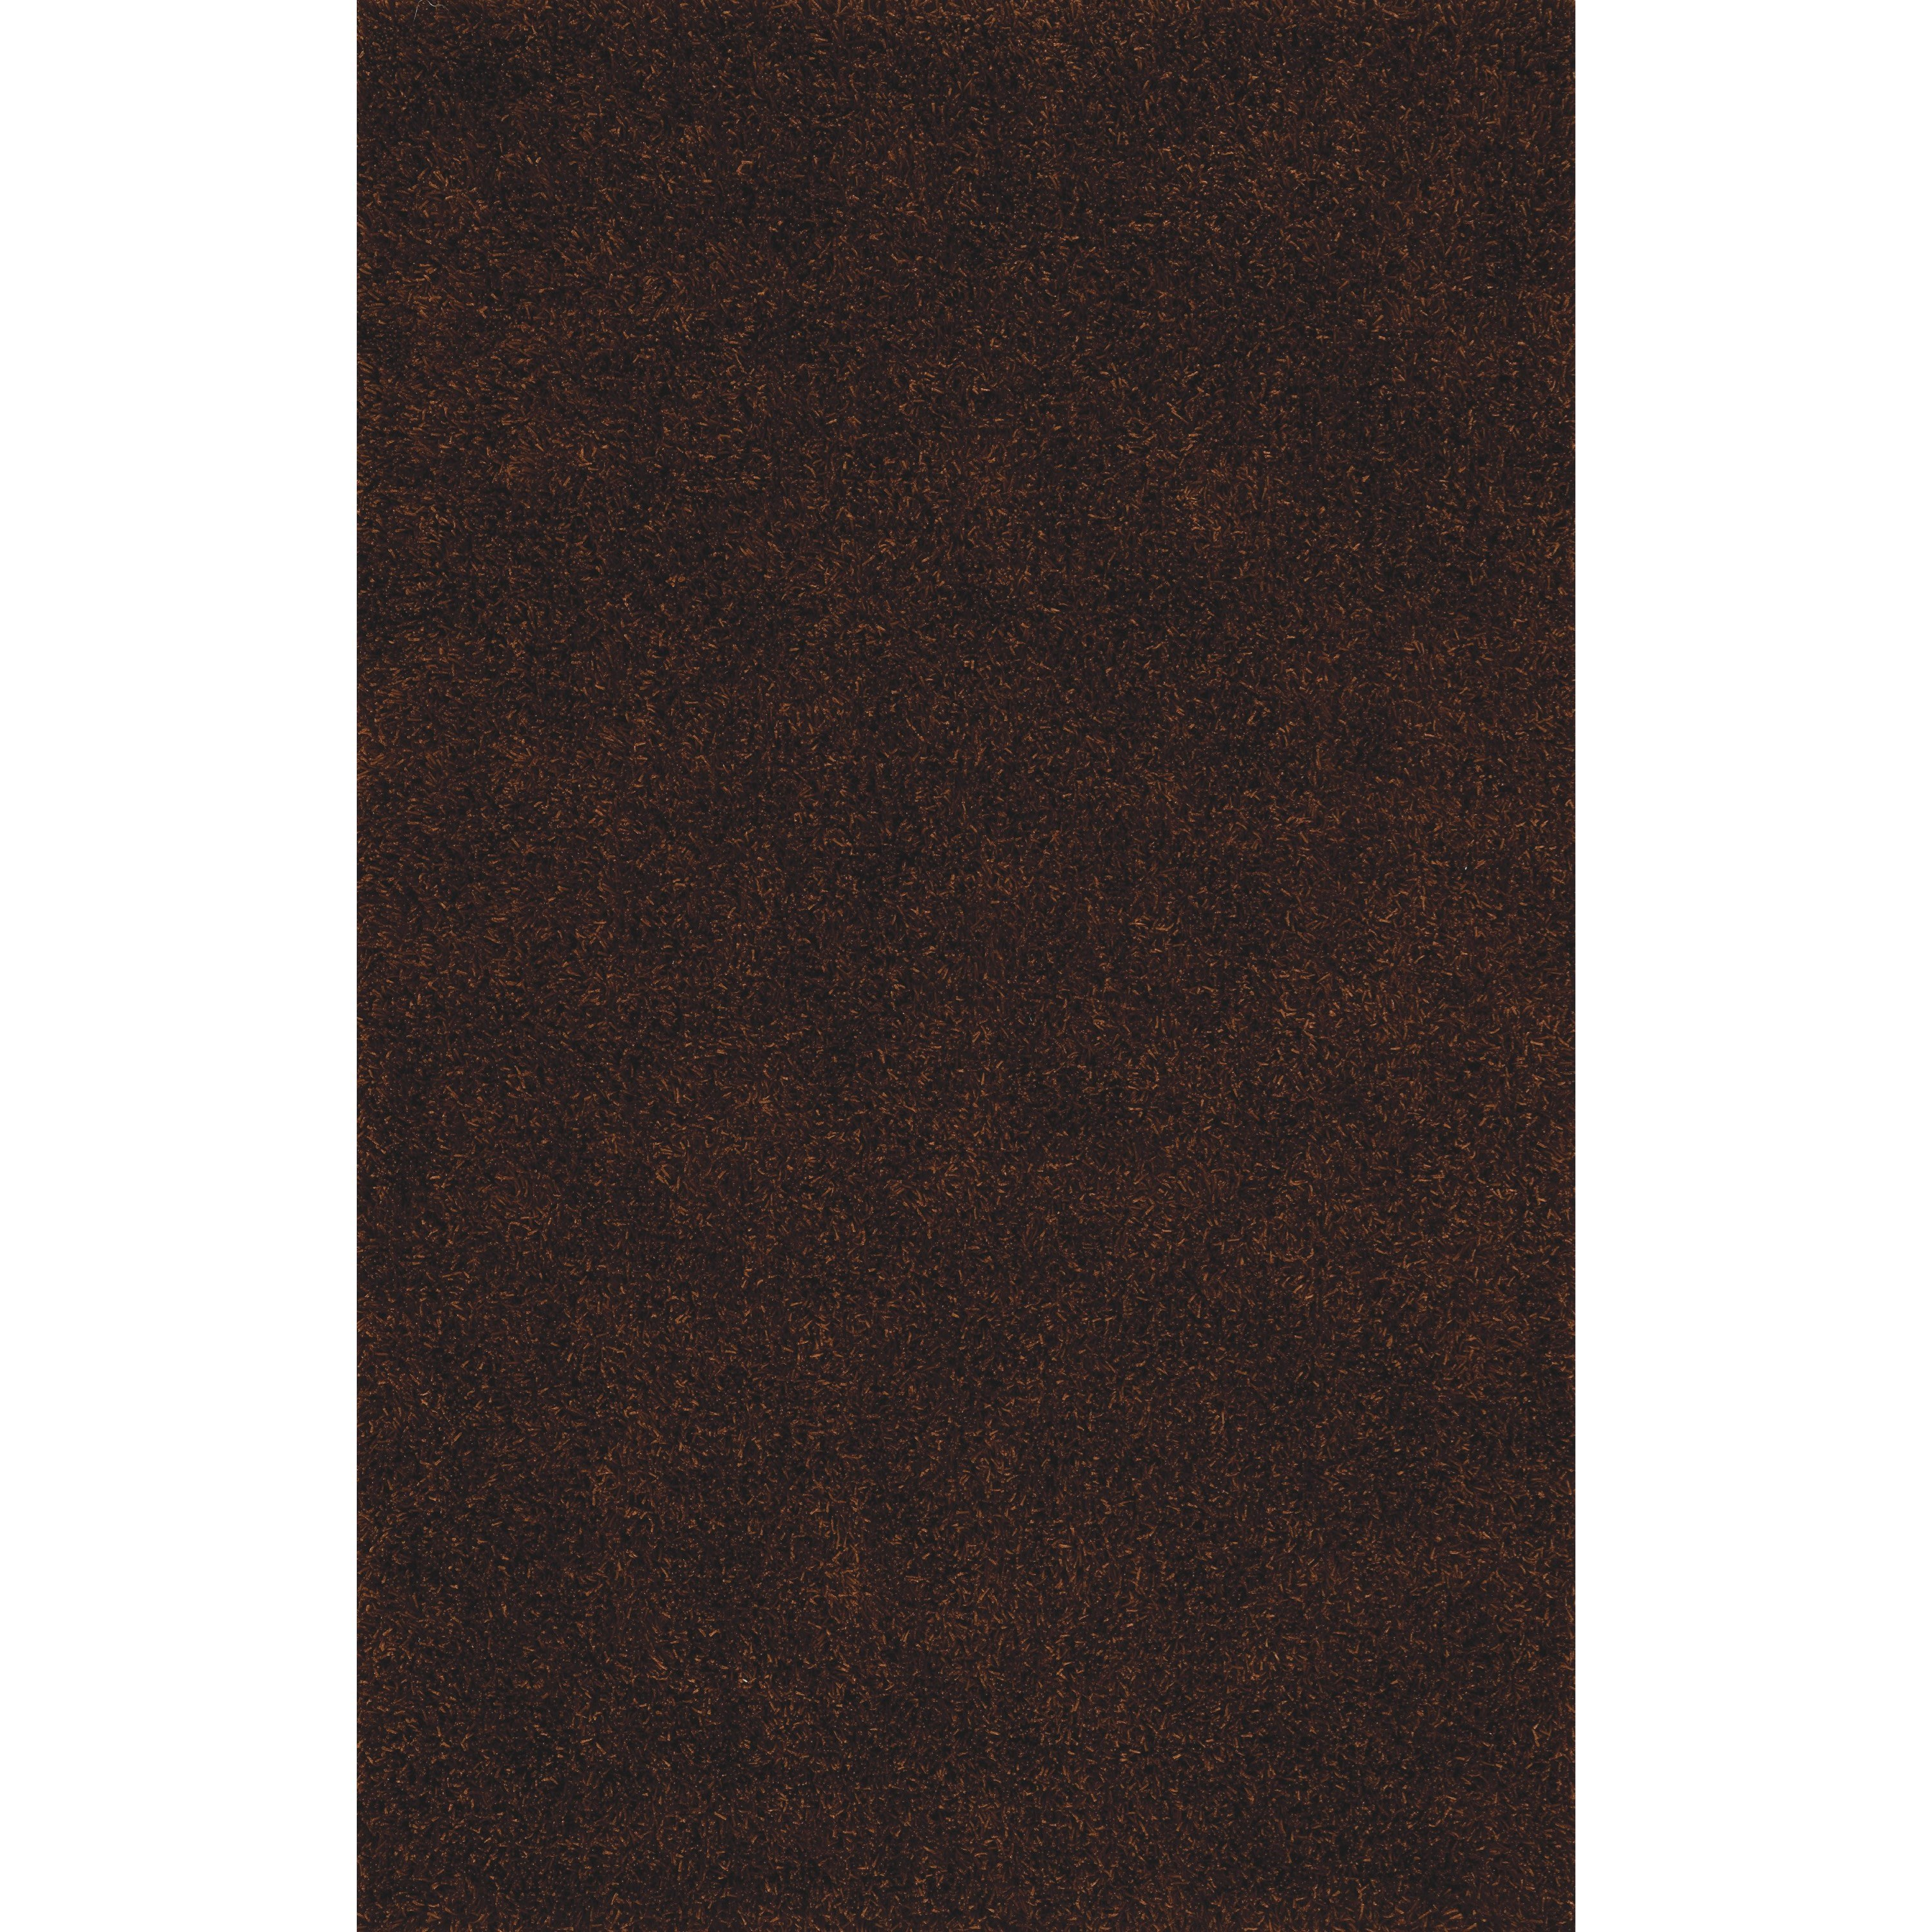 """Illusions Chocolate 5'X7'6"""" Rug by Dalyn at Fashion Furniture"""